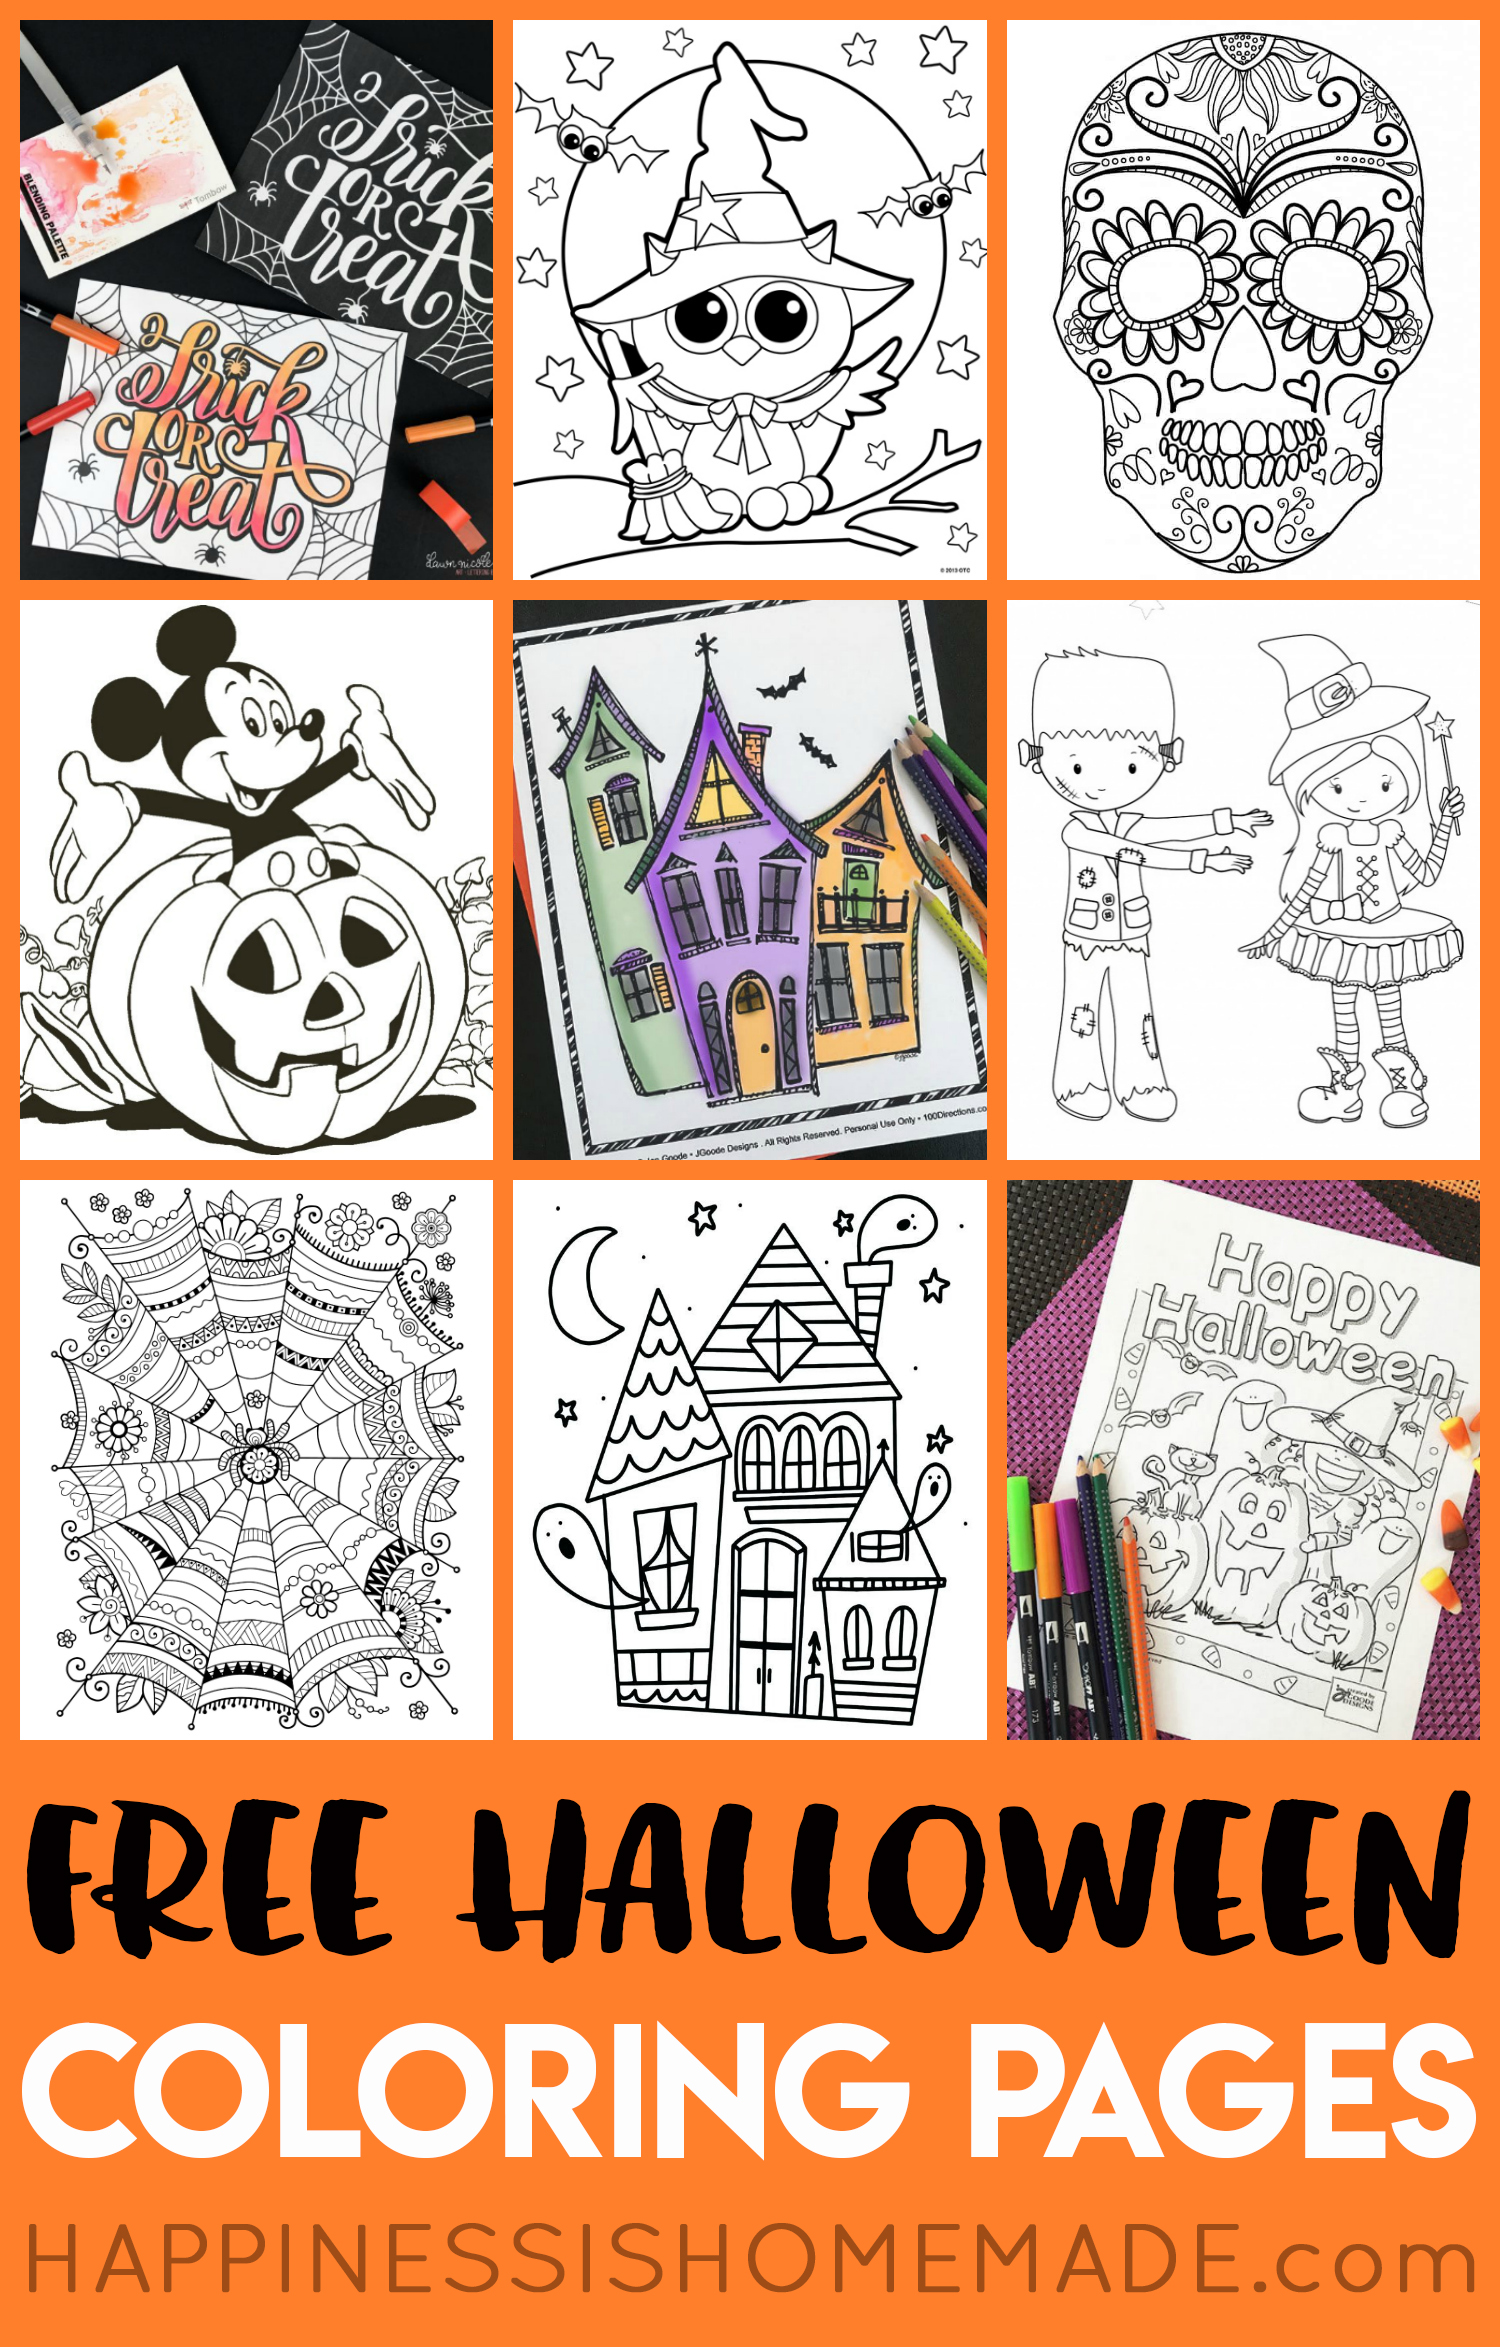 - FREE Halloween Coloring Pages For Adults & Kids - Happiness Is